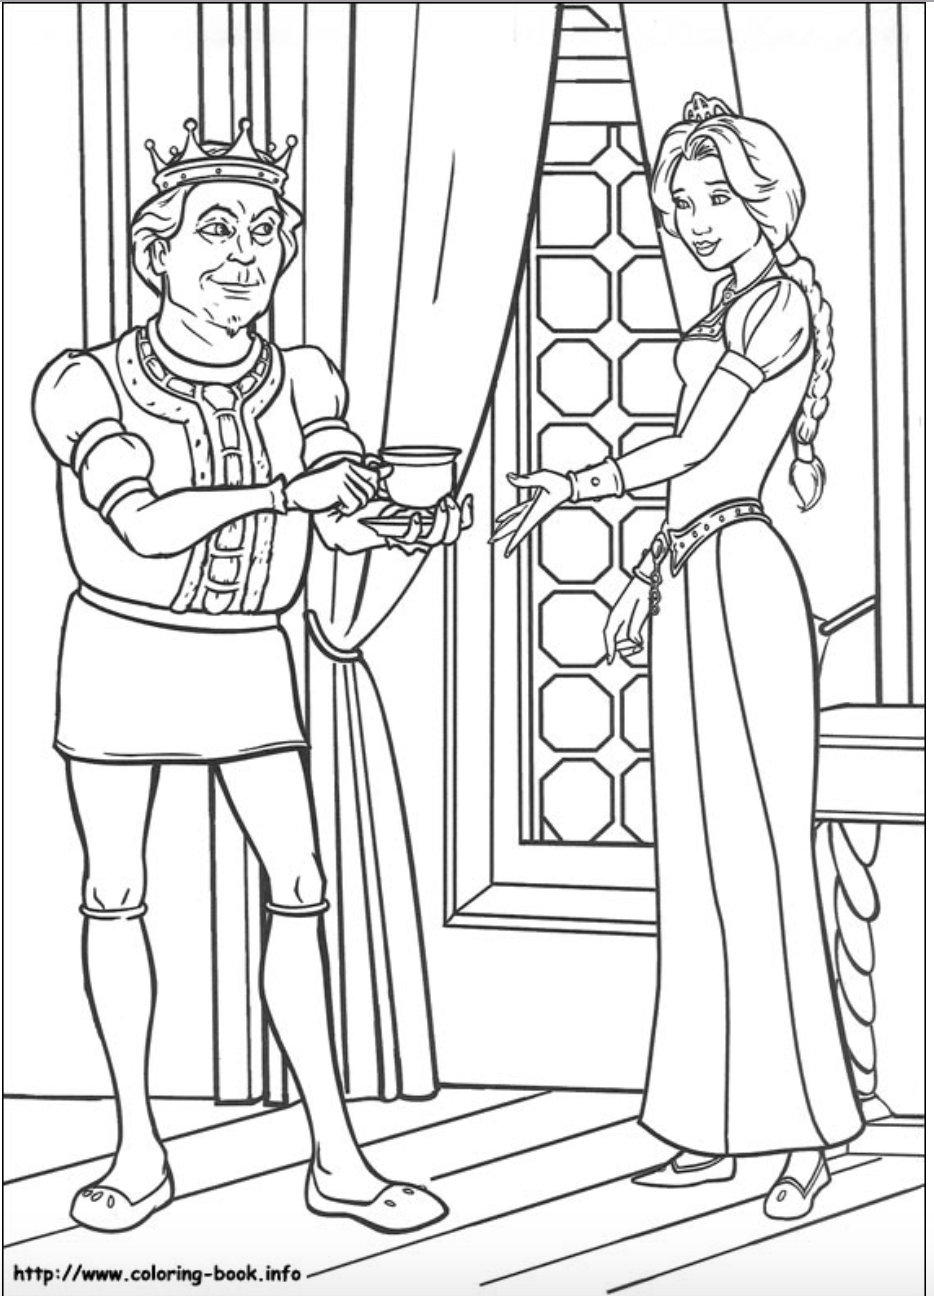 Princess Fiona and her Father, King Harold coloring page